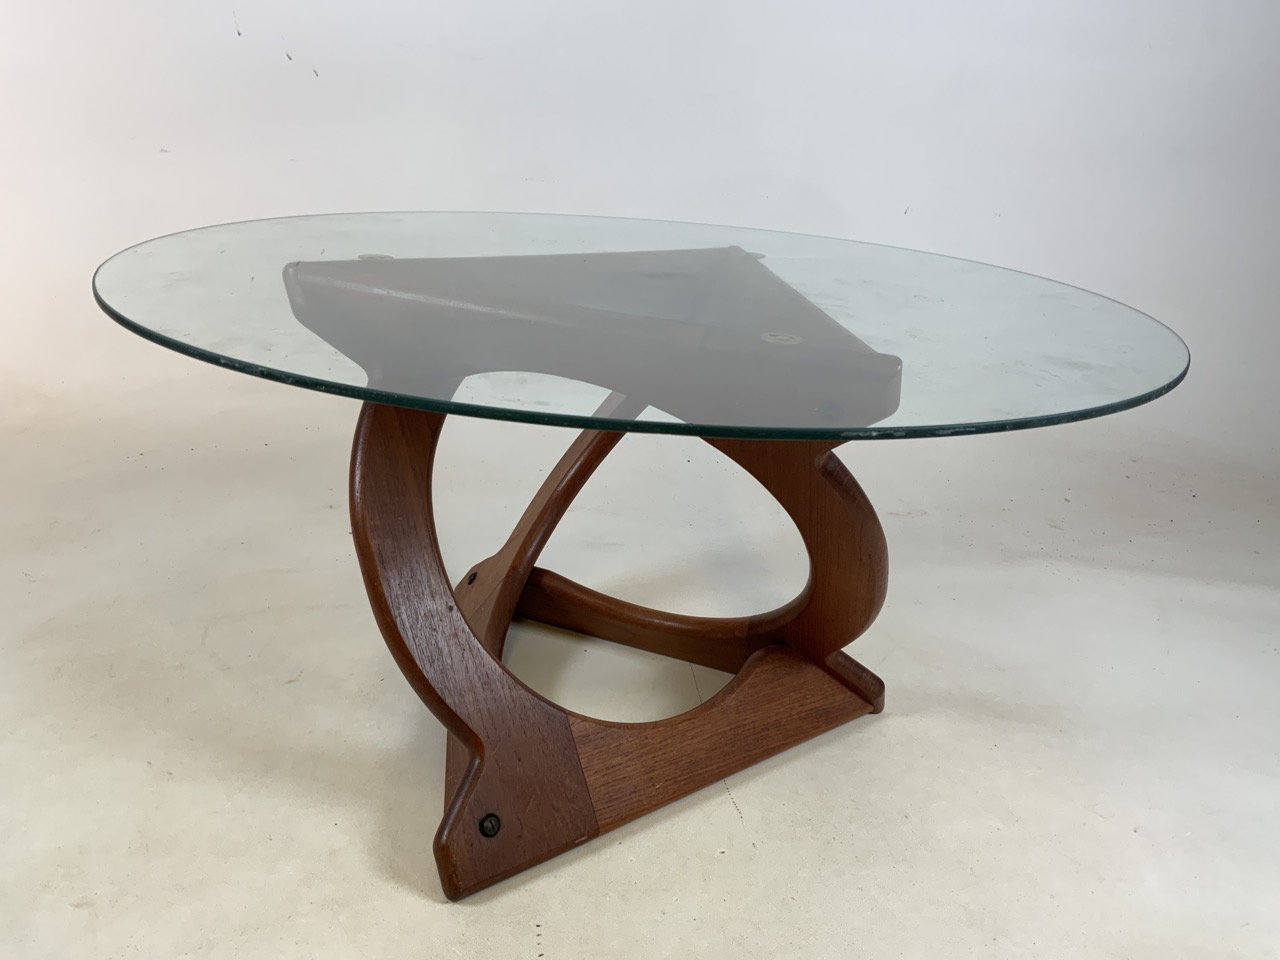 A Danish Glass top coffee table by Georg Jenson for Kubus. Diameter 75cm, Heoght 39cm - Image 3 of 5